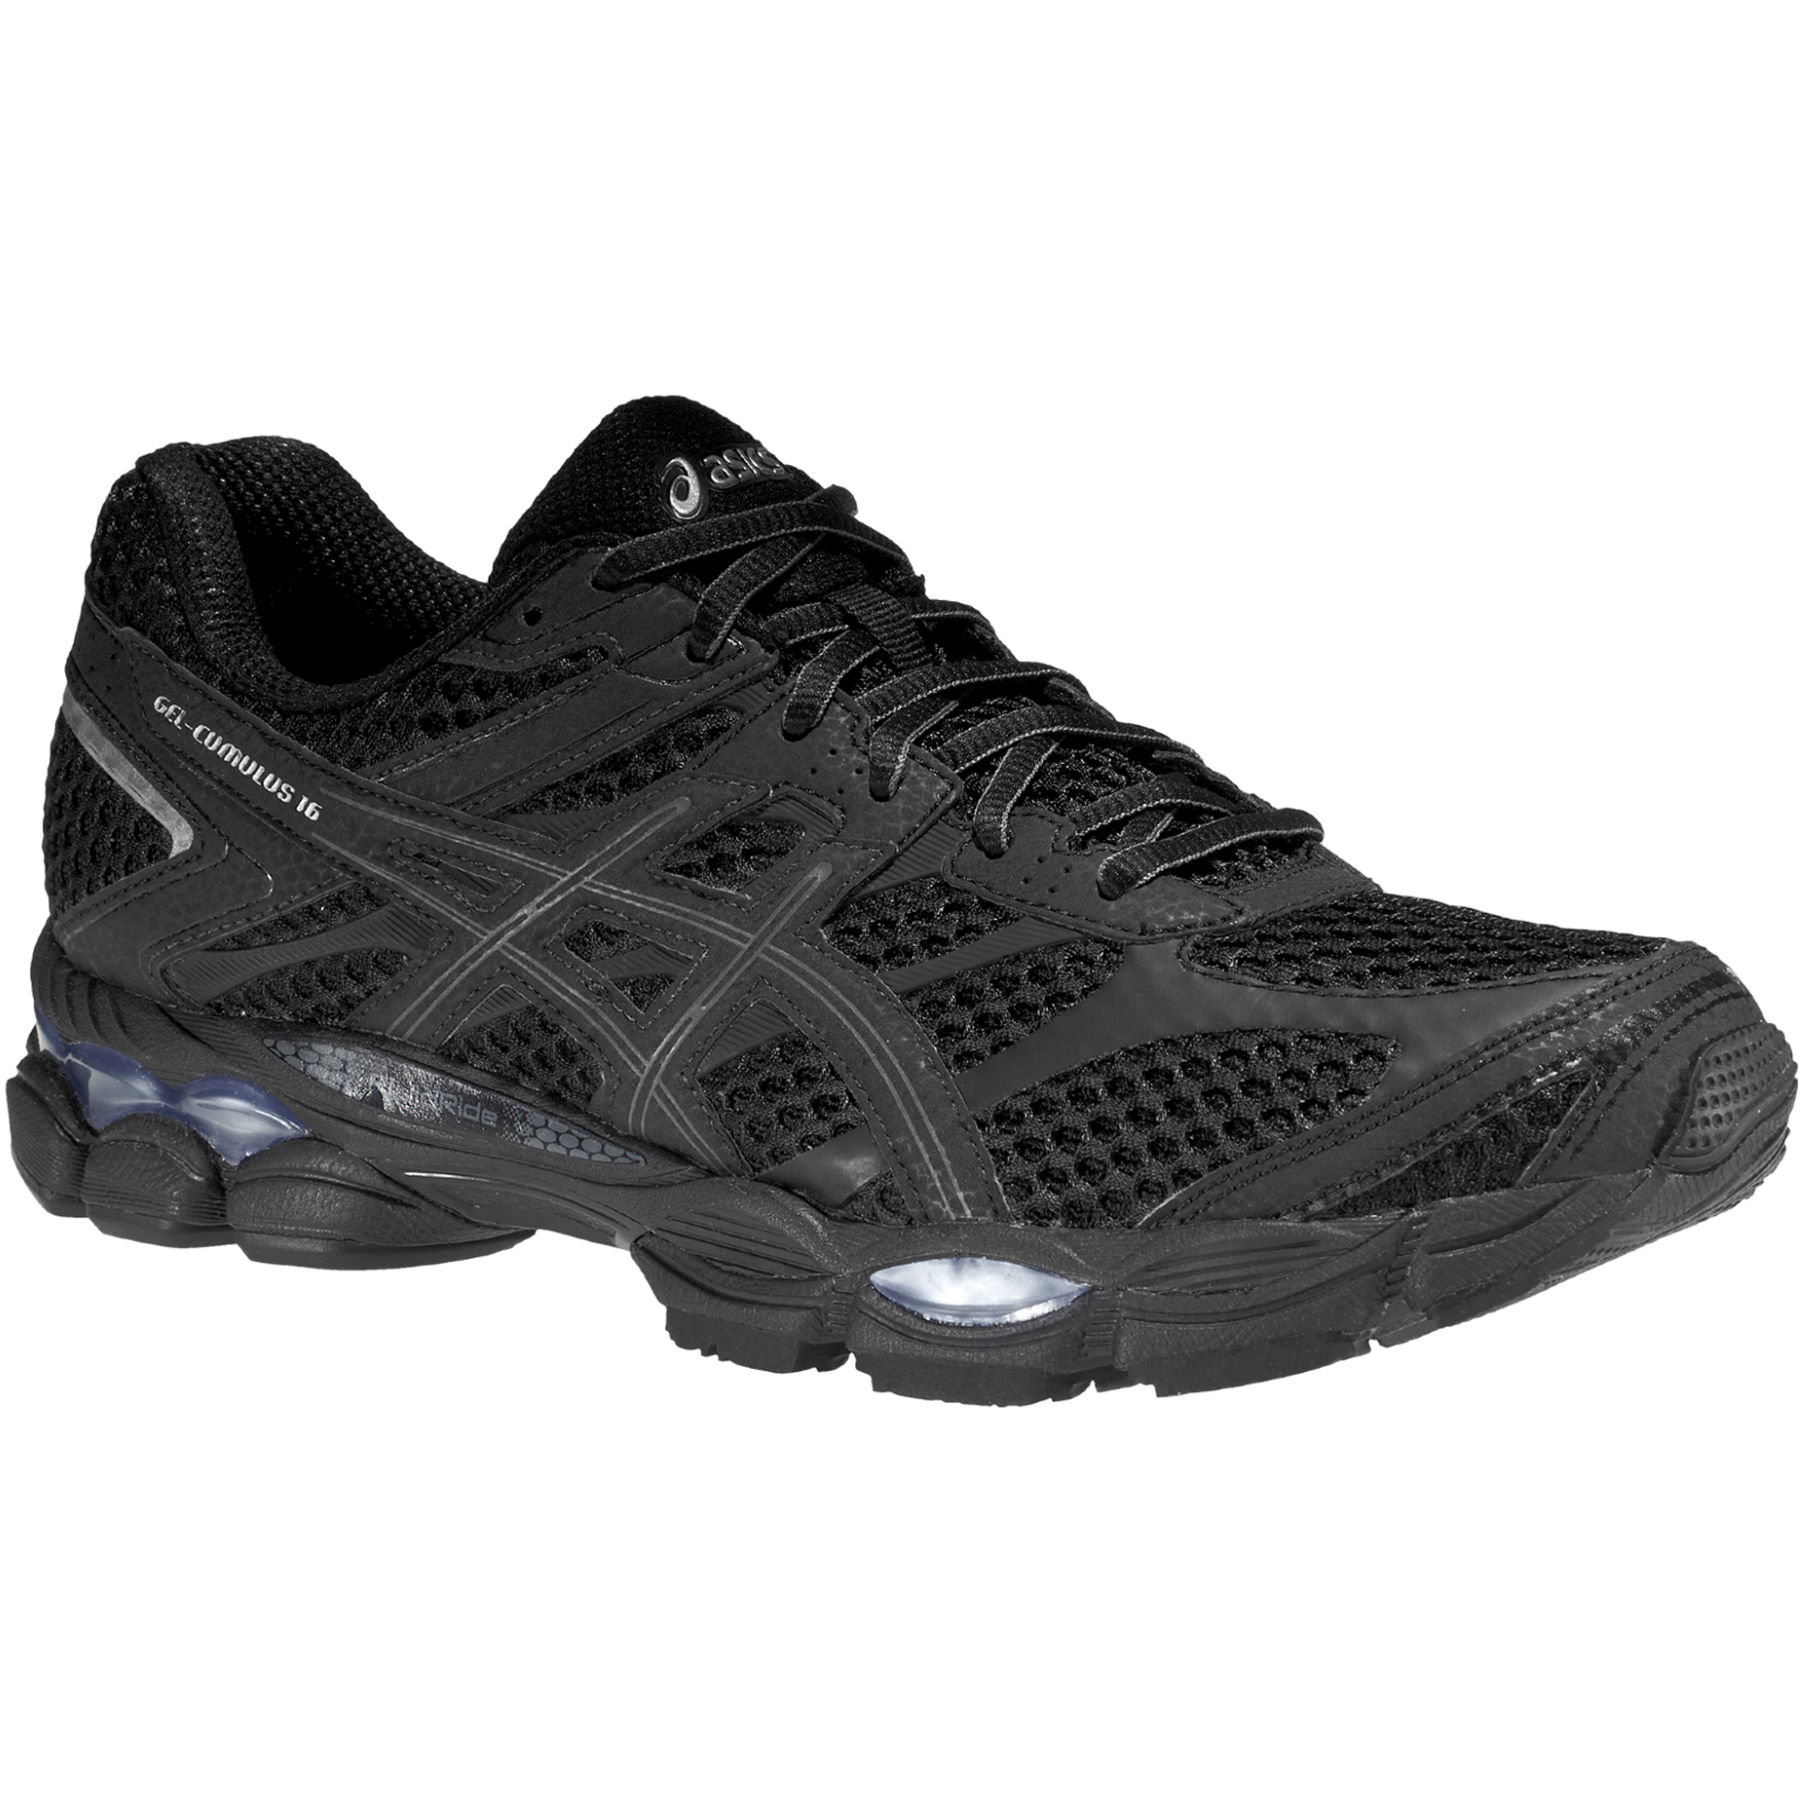 wiggle asics gel cumulus 16 shoes ss15 cushion running shoes. Black Bedroom Furniture Sets. Home Design Ideas